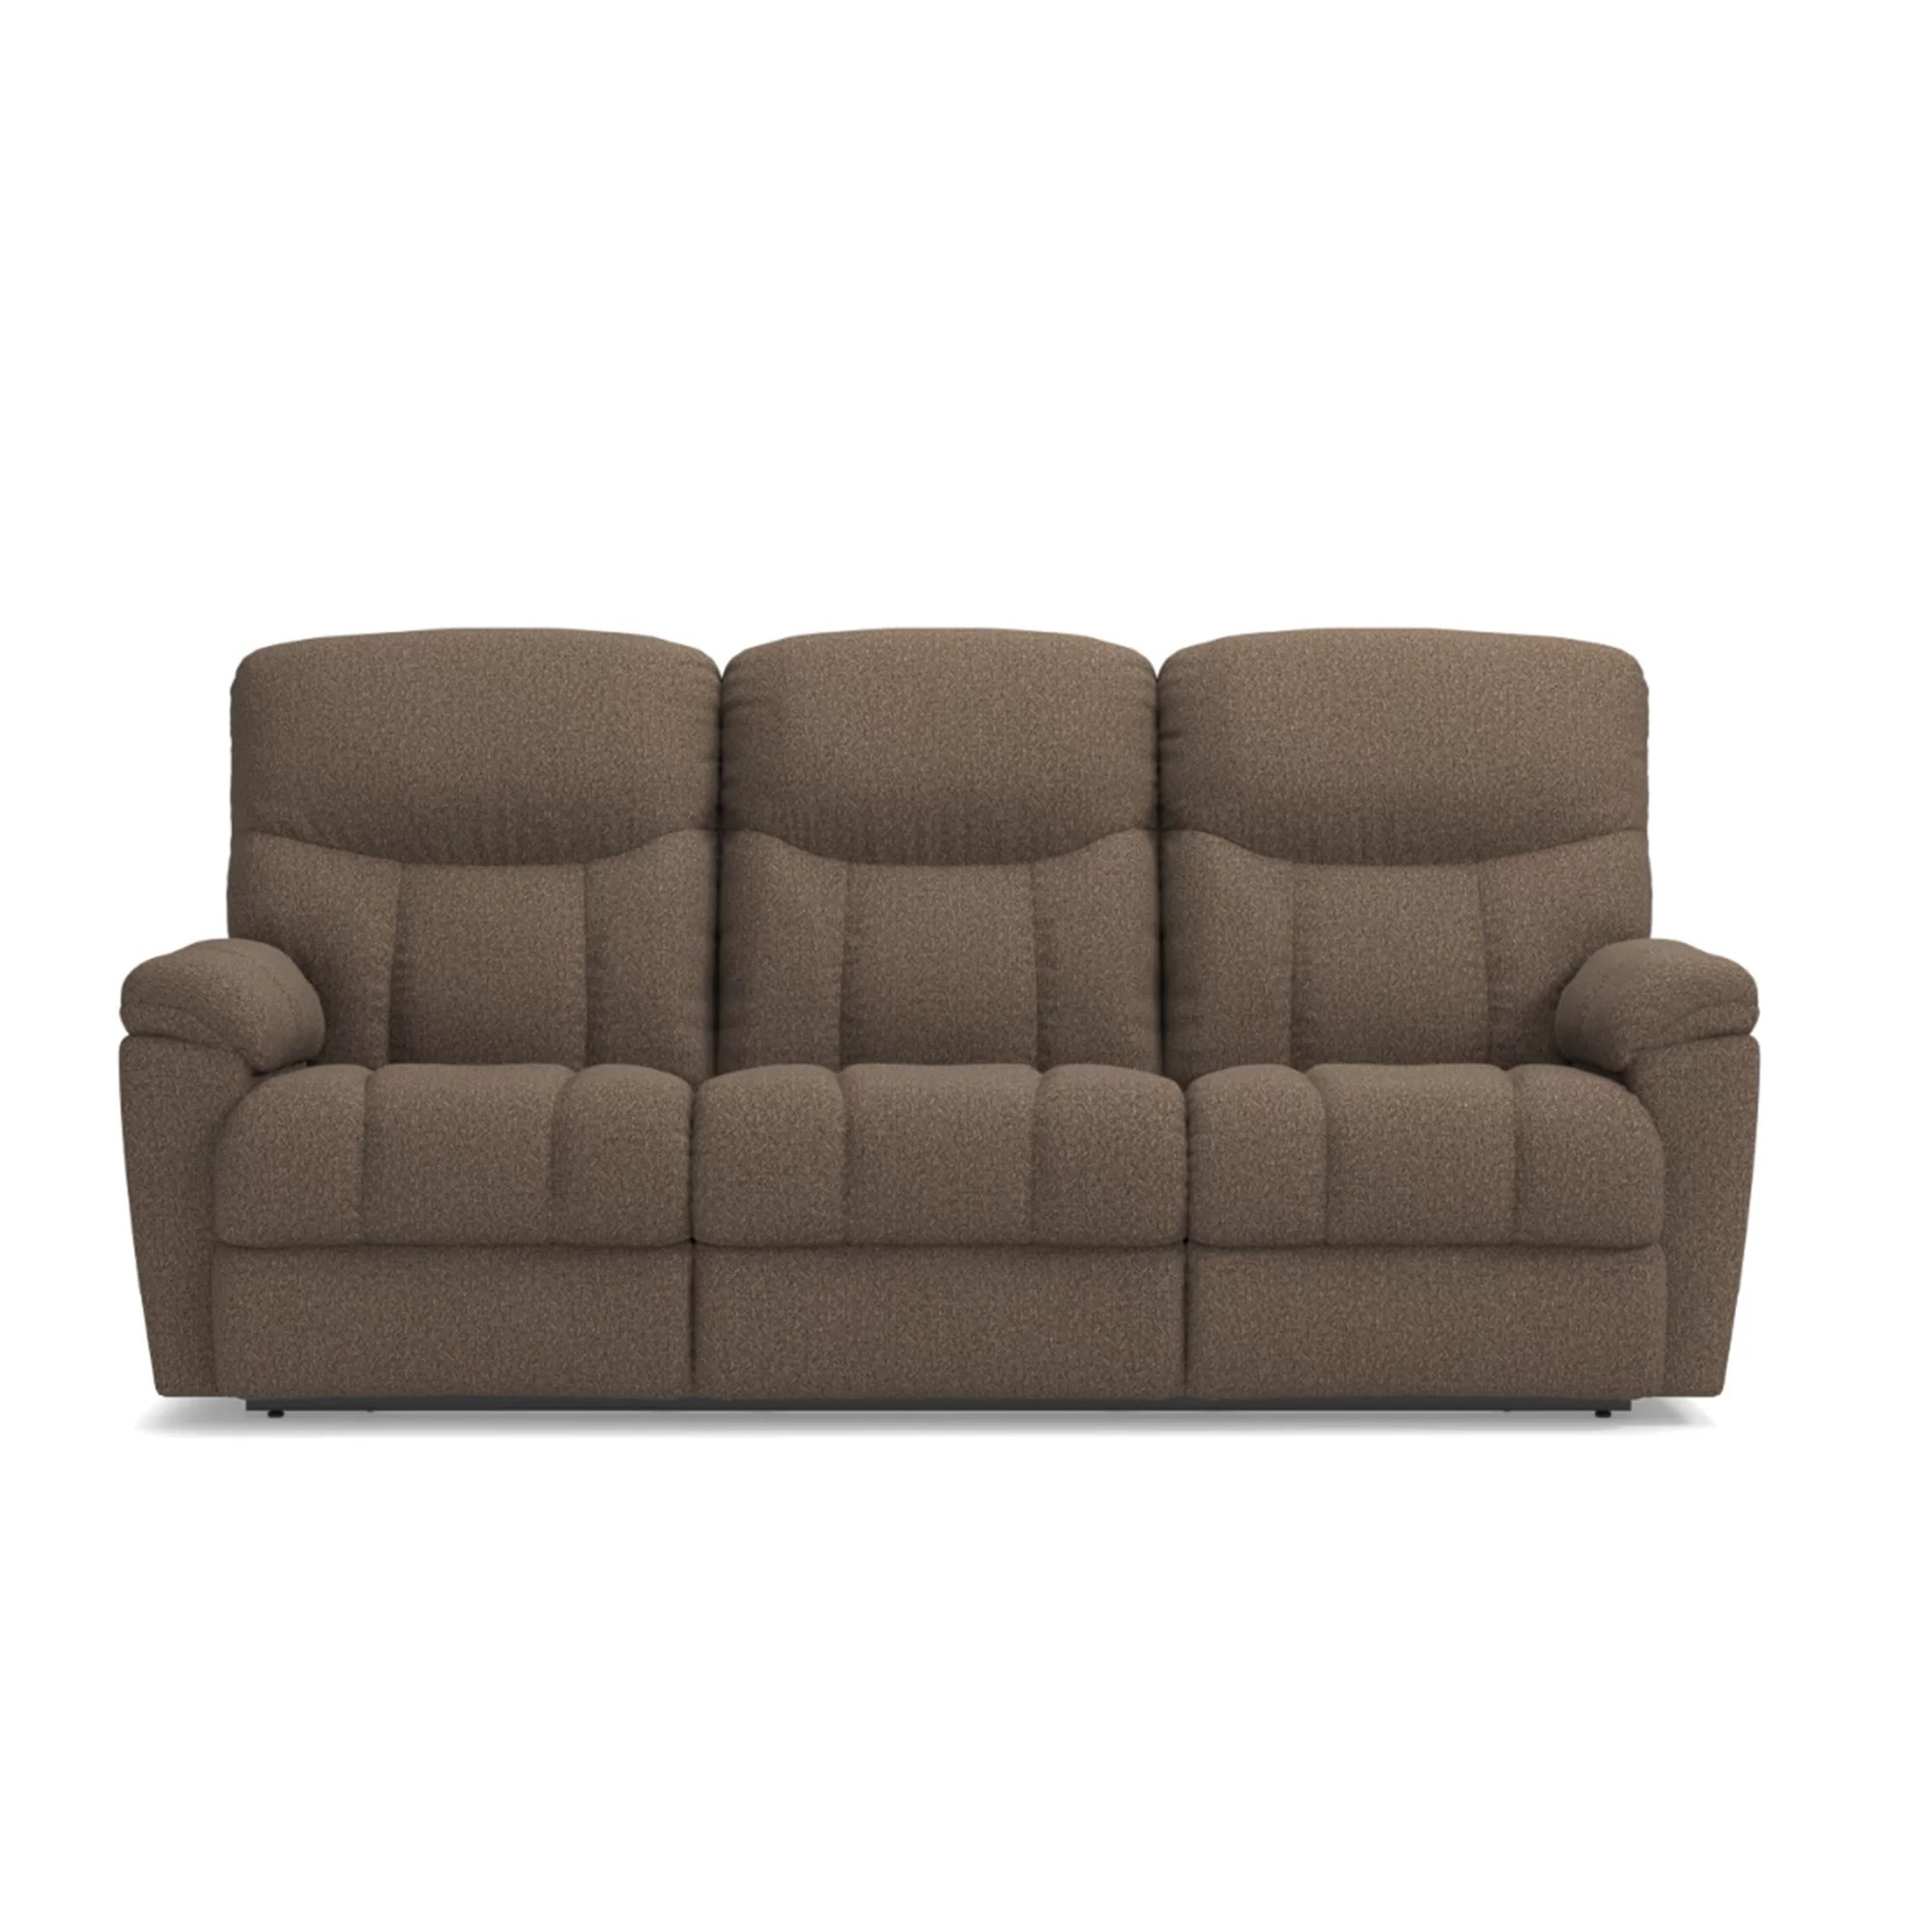 Leather Sofa La Z Boy Morrison Reclining Sofa